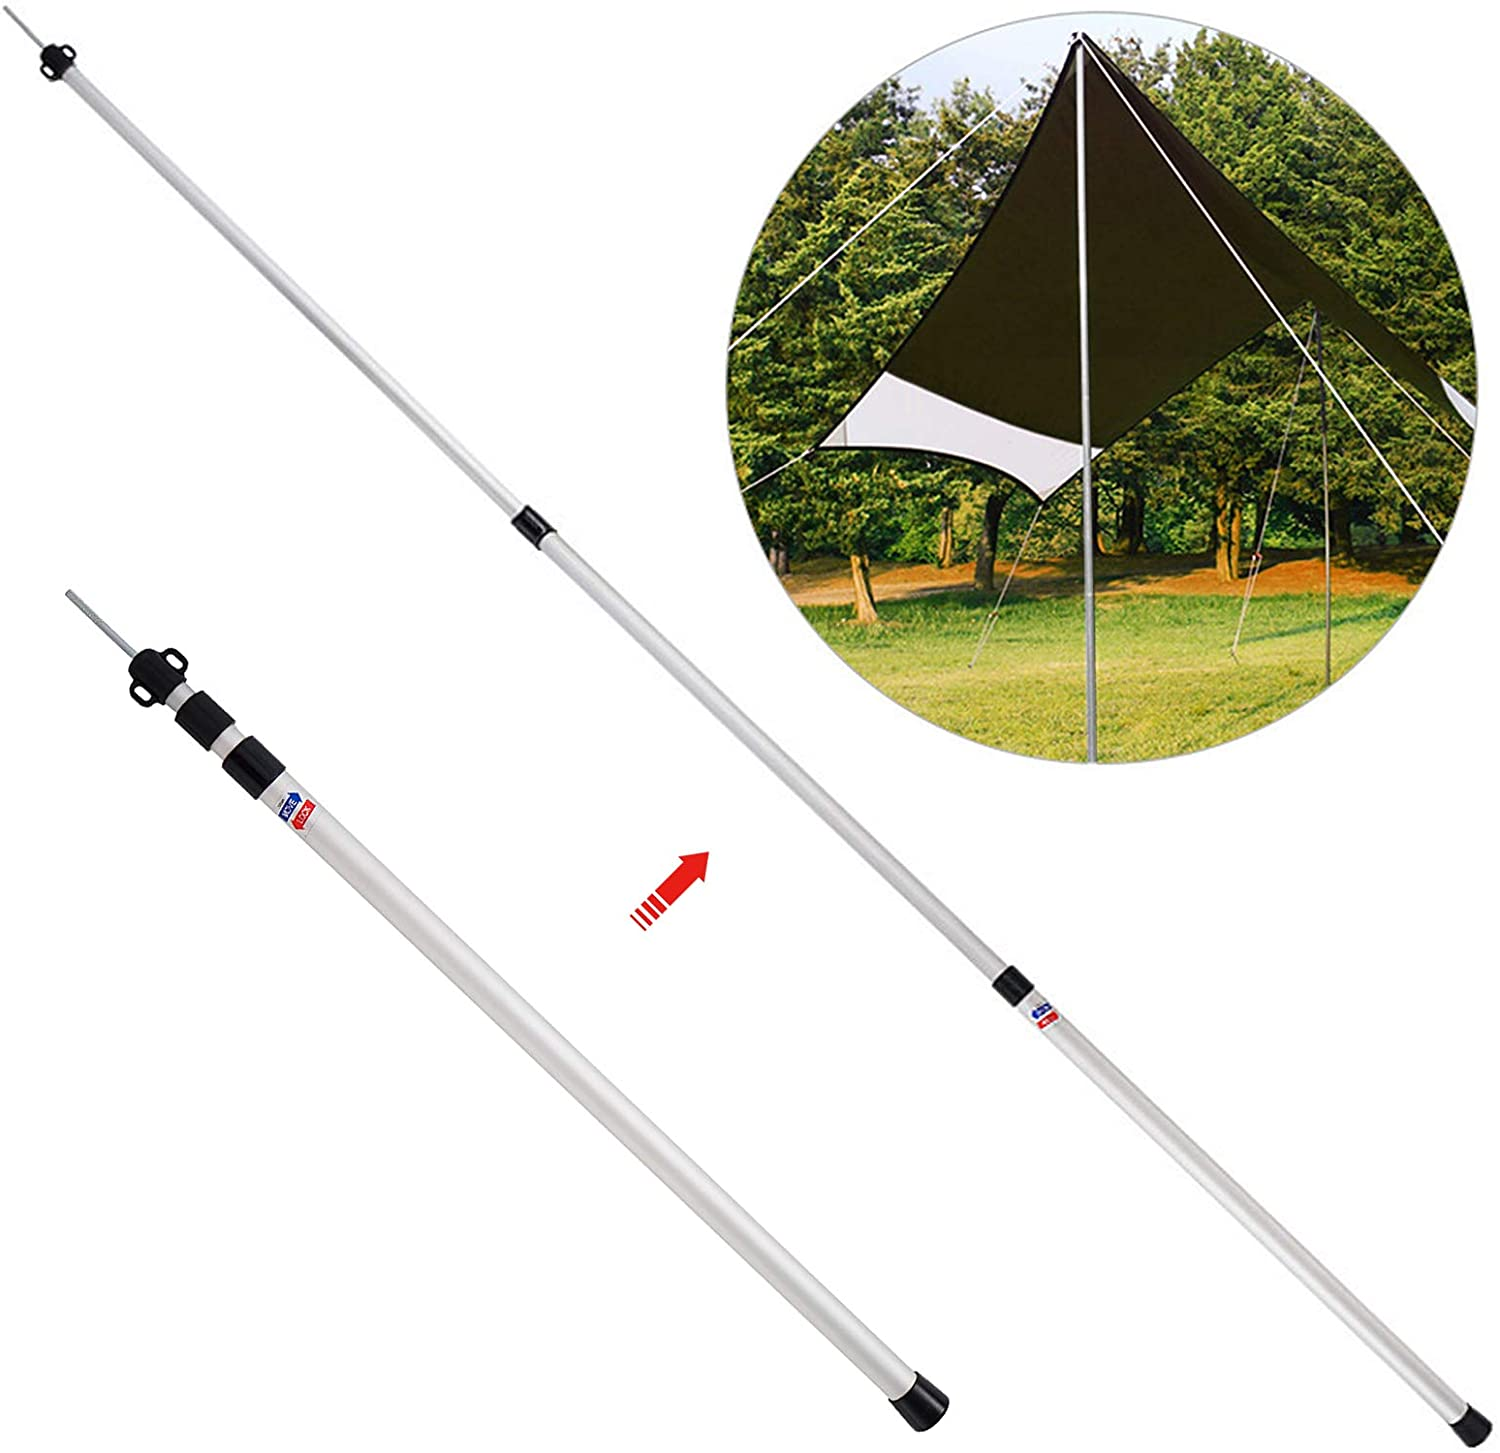 Roeam Thicken Aluminum Alloy Tent Pole Adjustable Tent Support Rods Beach Shelter Tarp Awning Pole Replacement Poles Accessories for Camping Hiking Backpacking Tent